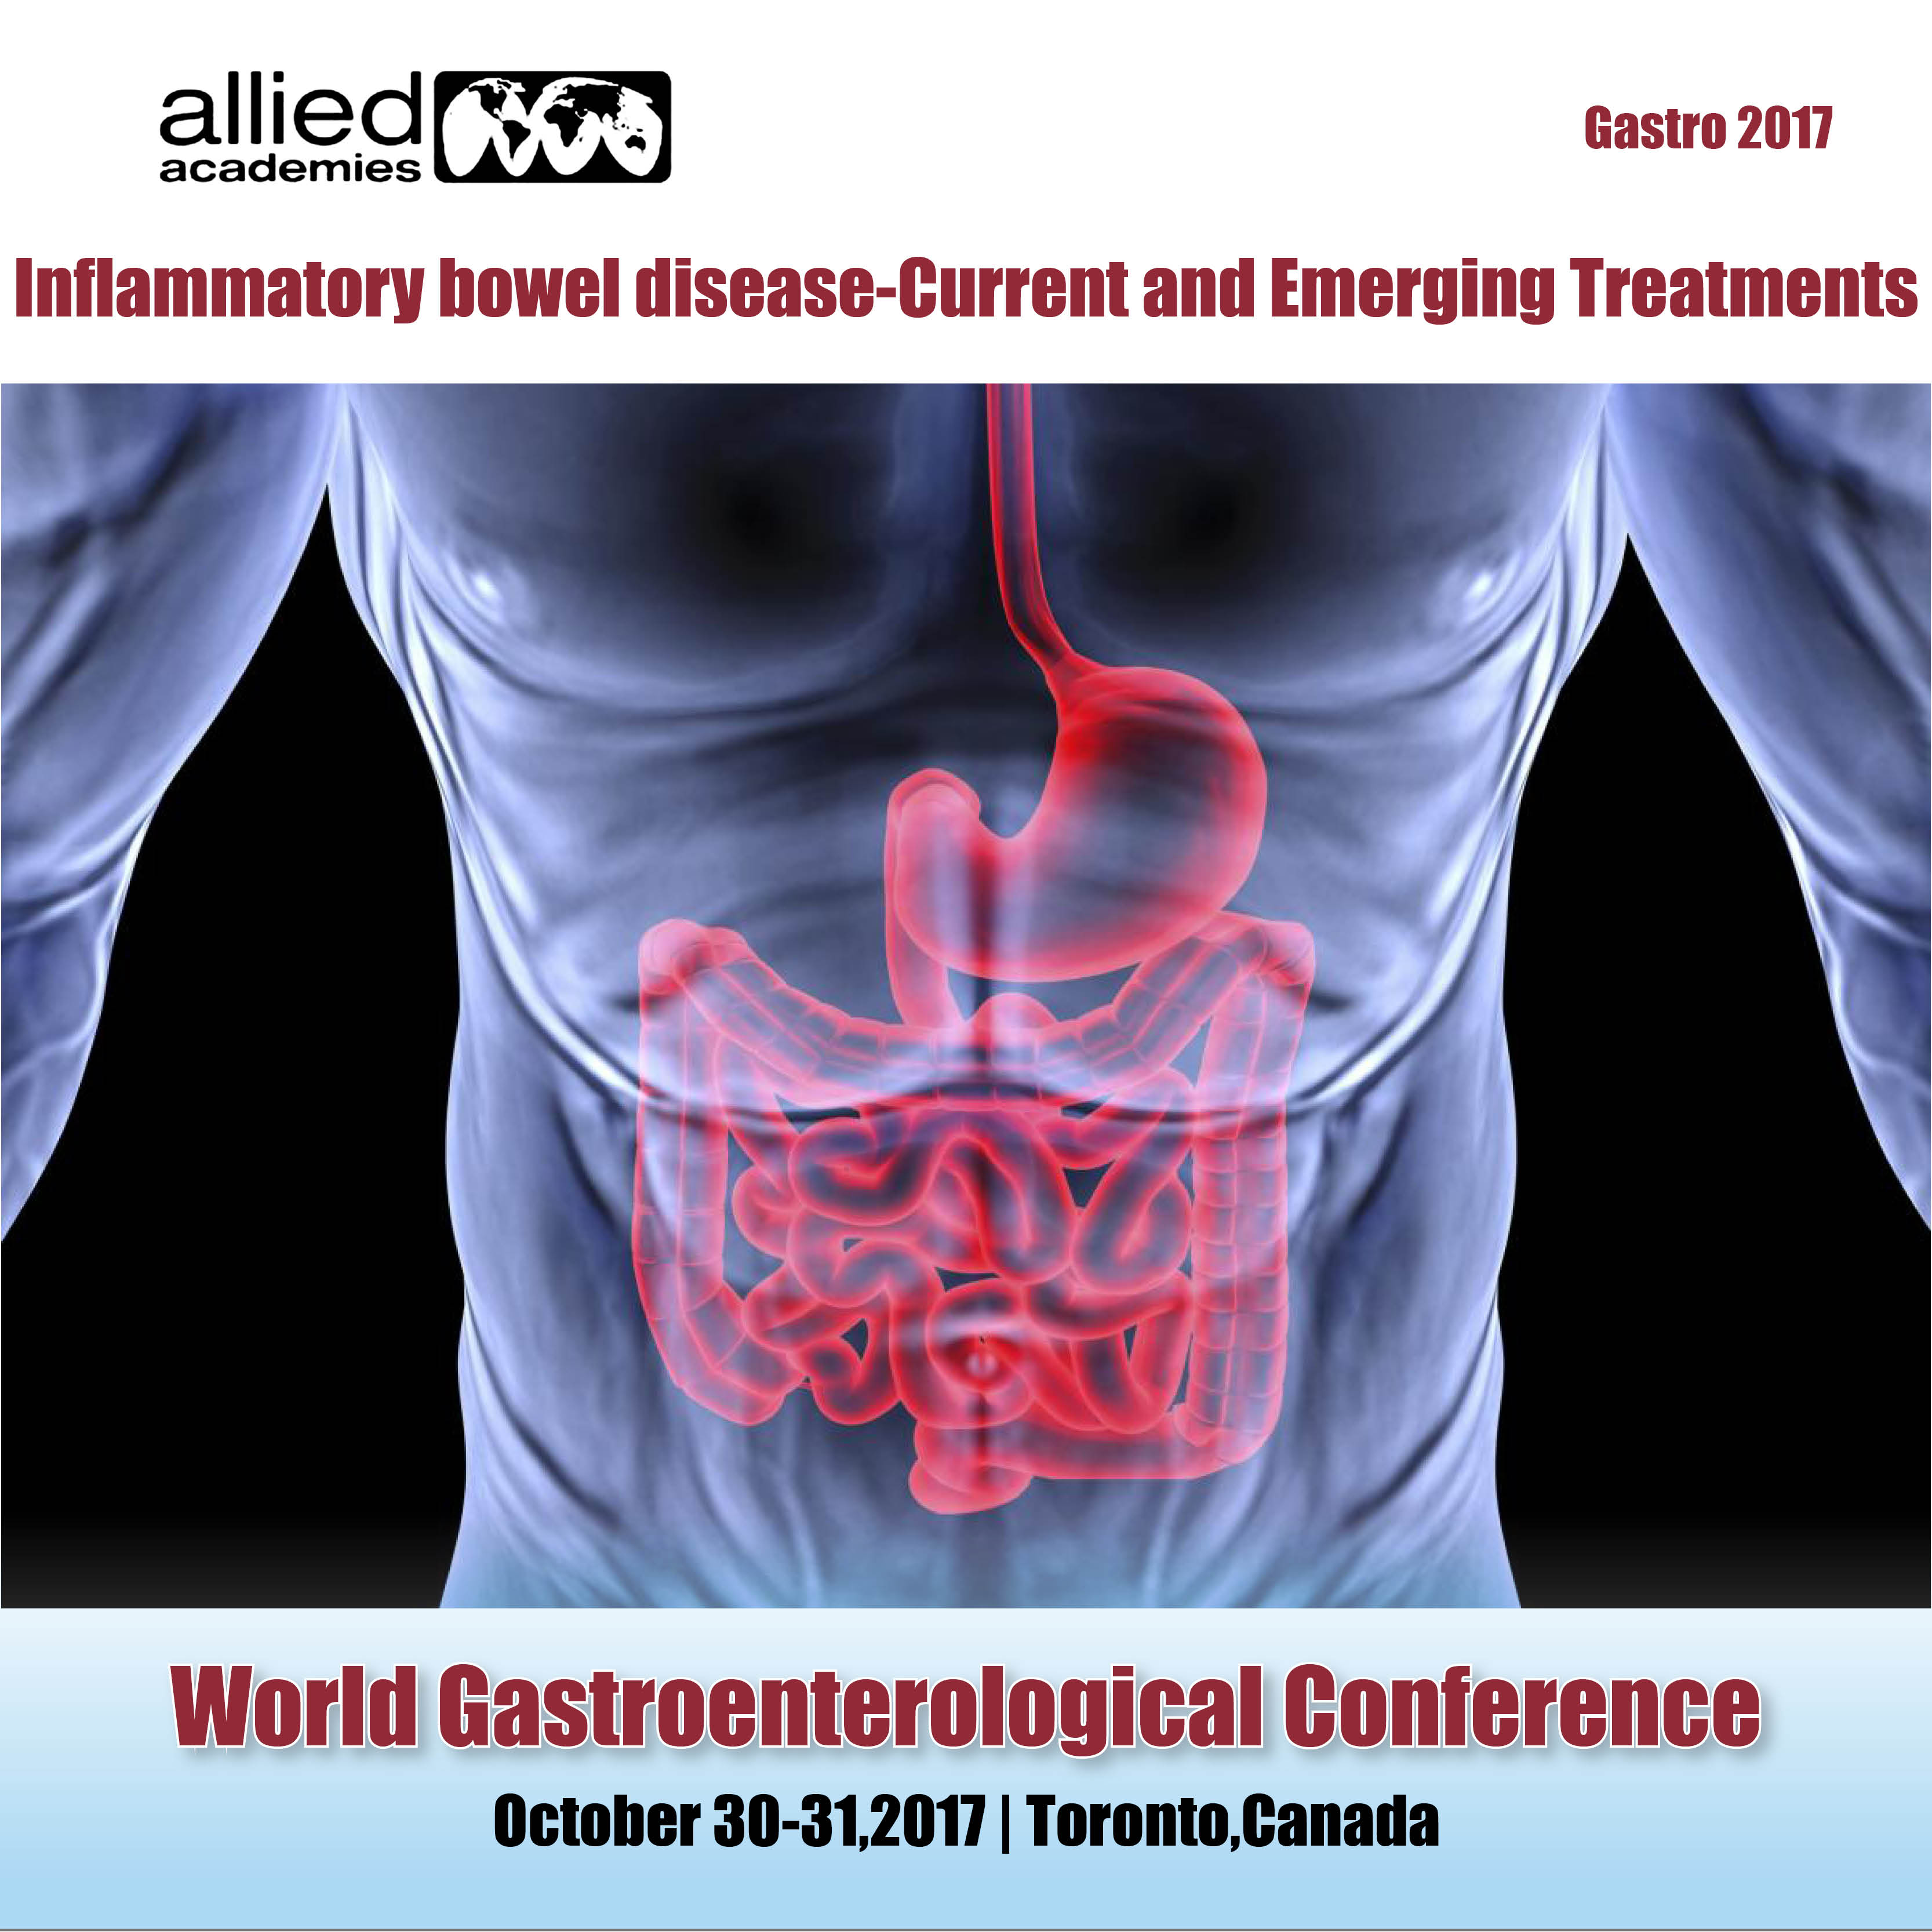 Inflammatory bowel disease-Current and Emerging Treatments Photo